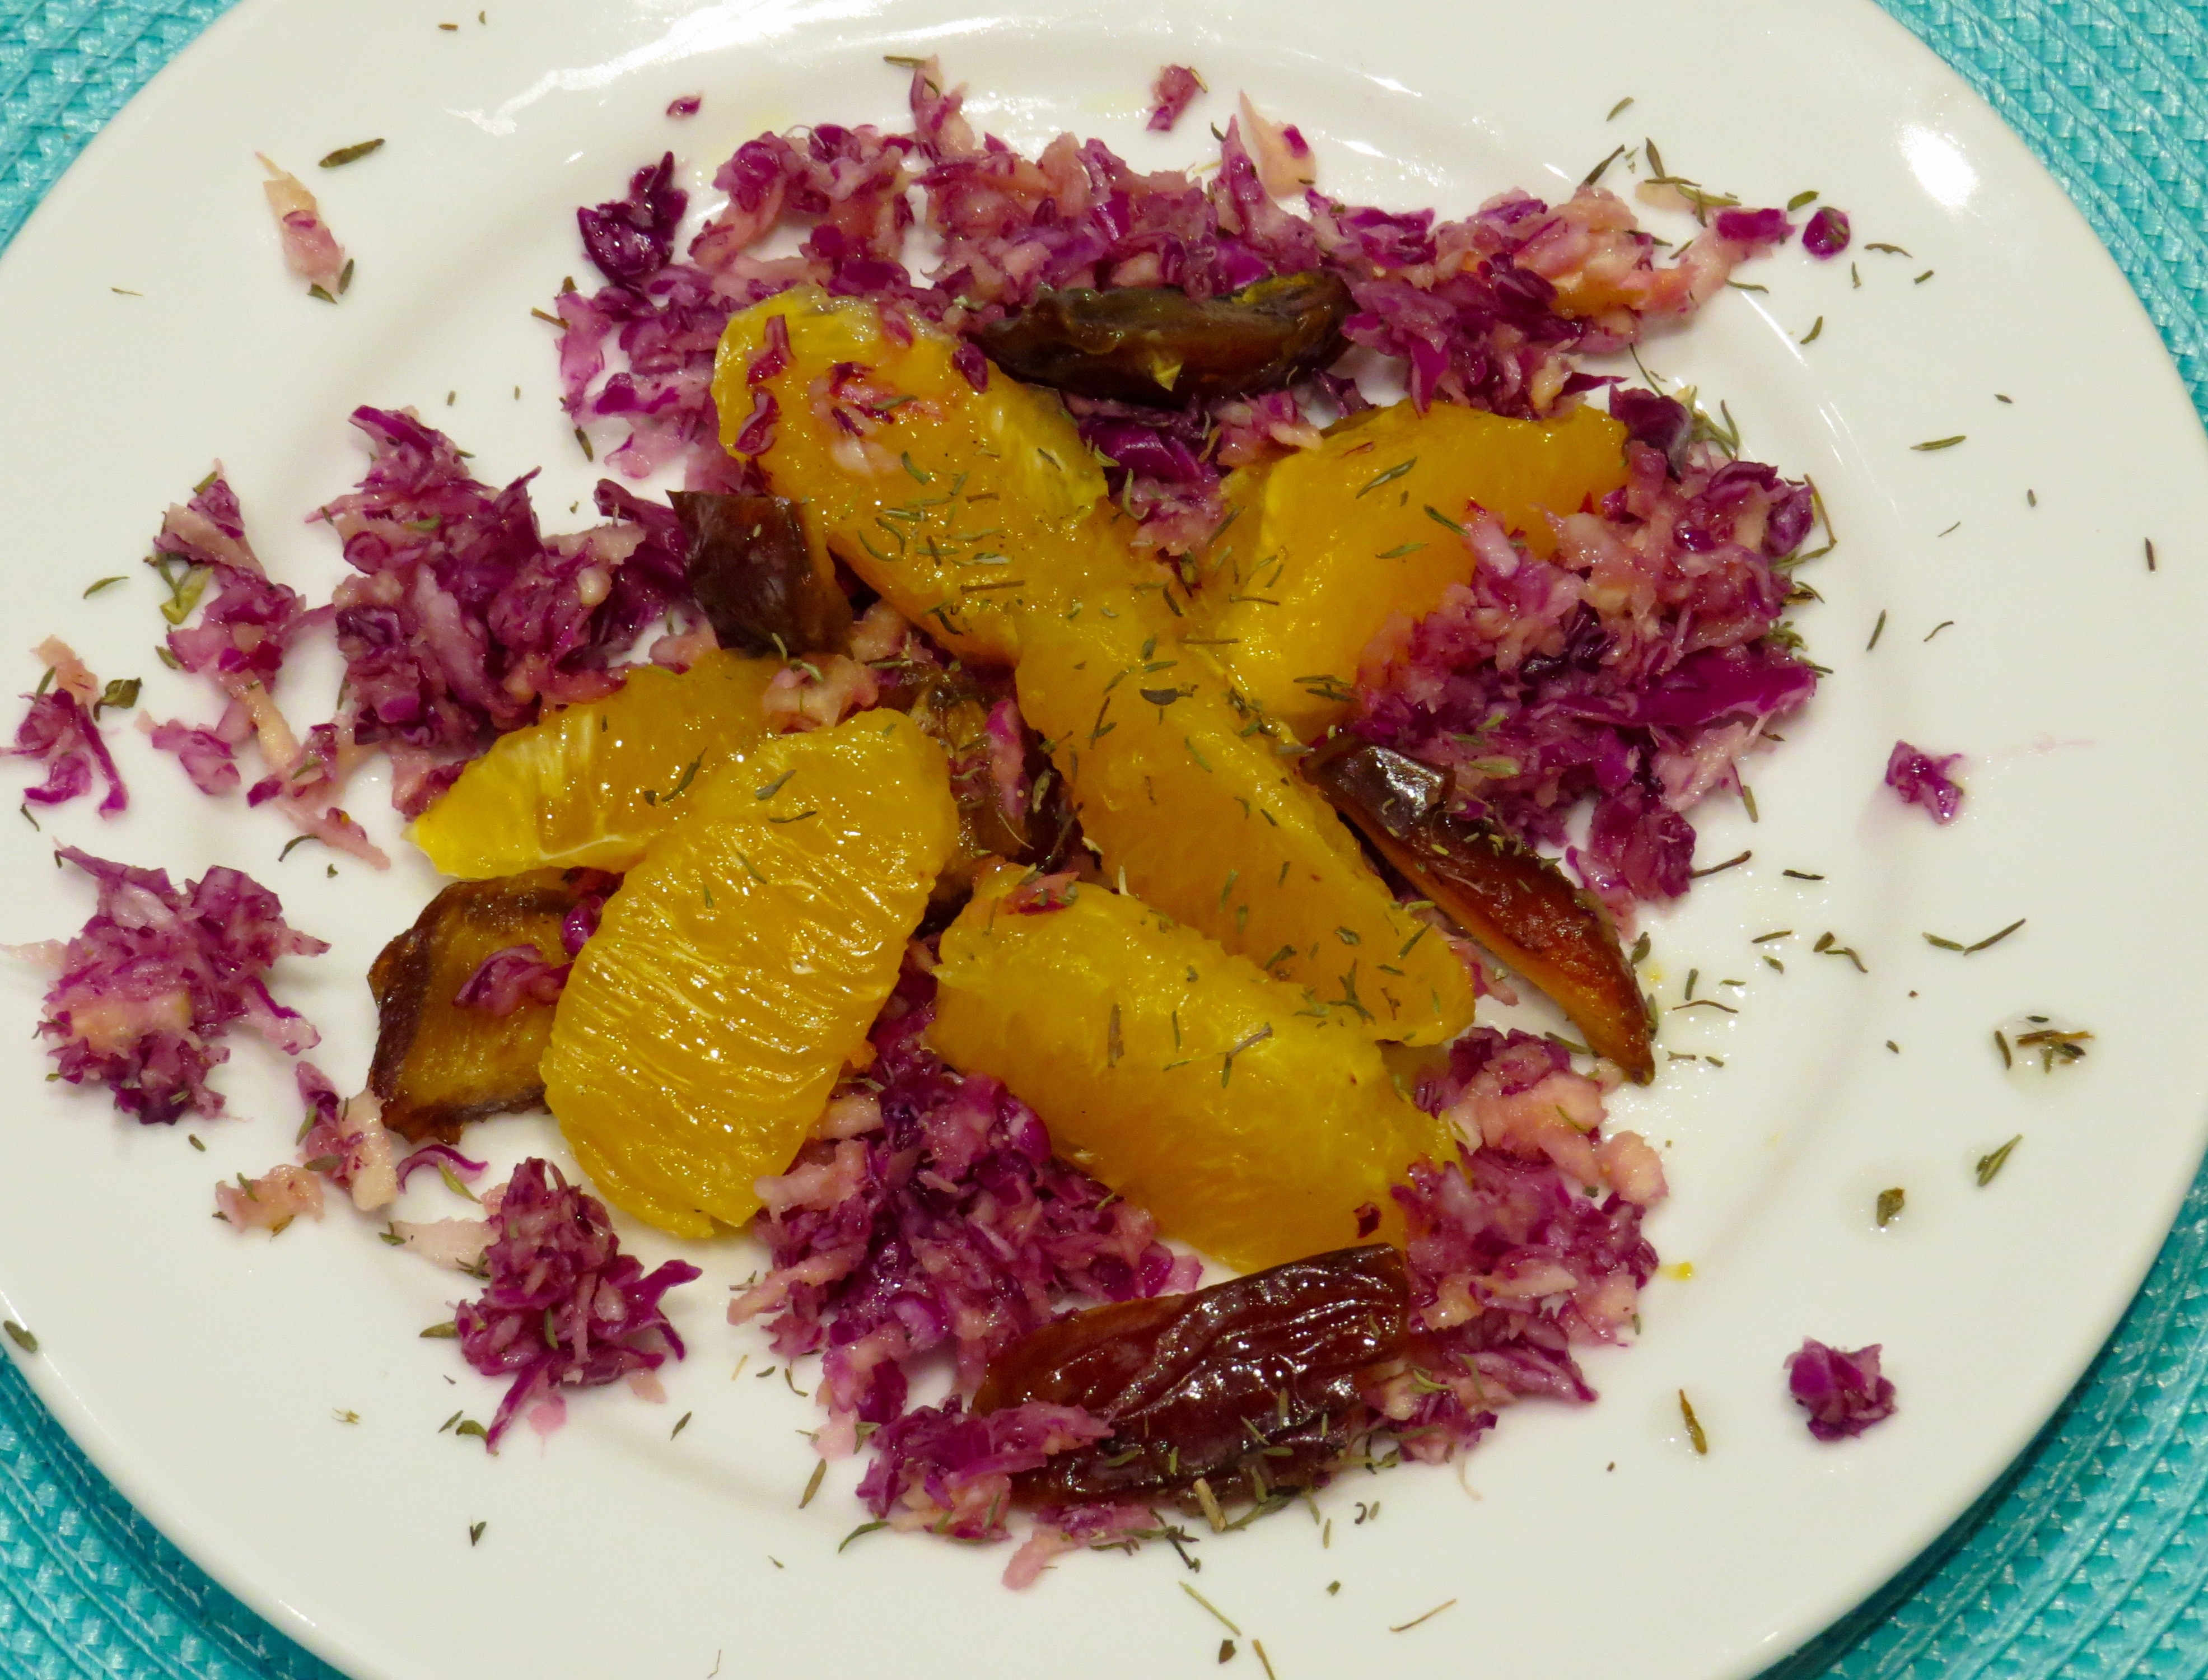 Red Cabbage, Parsnip, Orange and Dates Salad has Zing - that's the perfect word. The orange's juice provides the dressing.